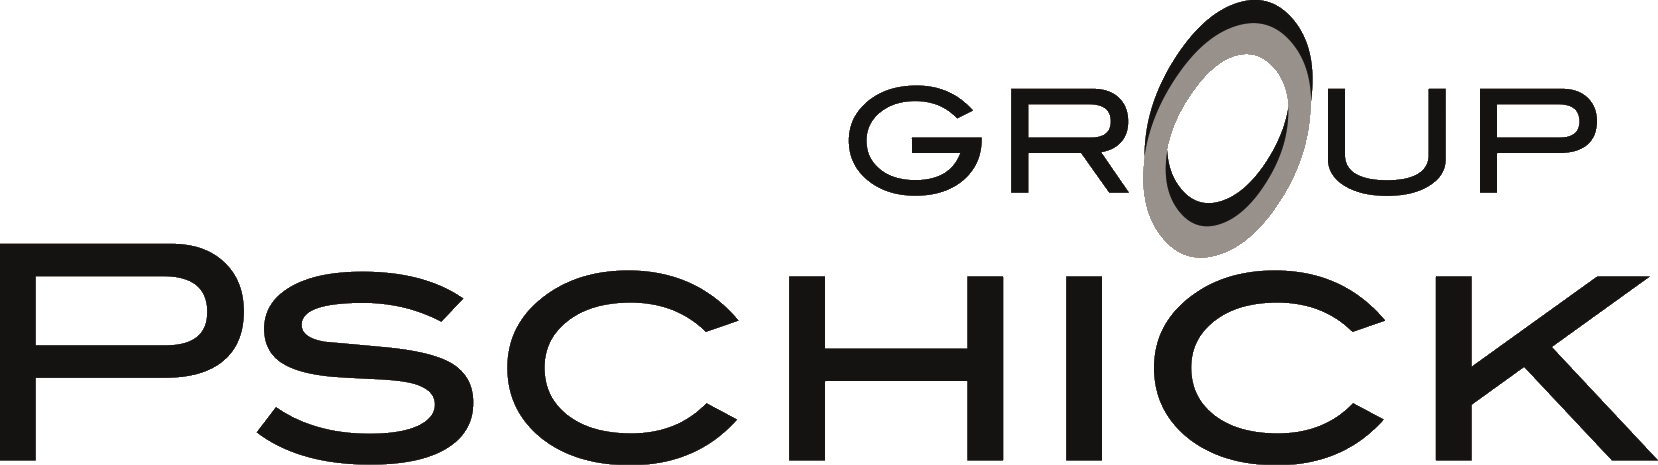 Pschick Group Logo